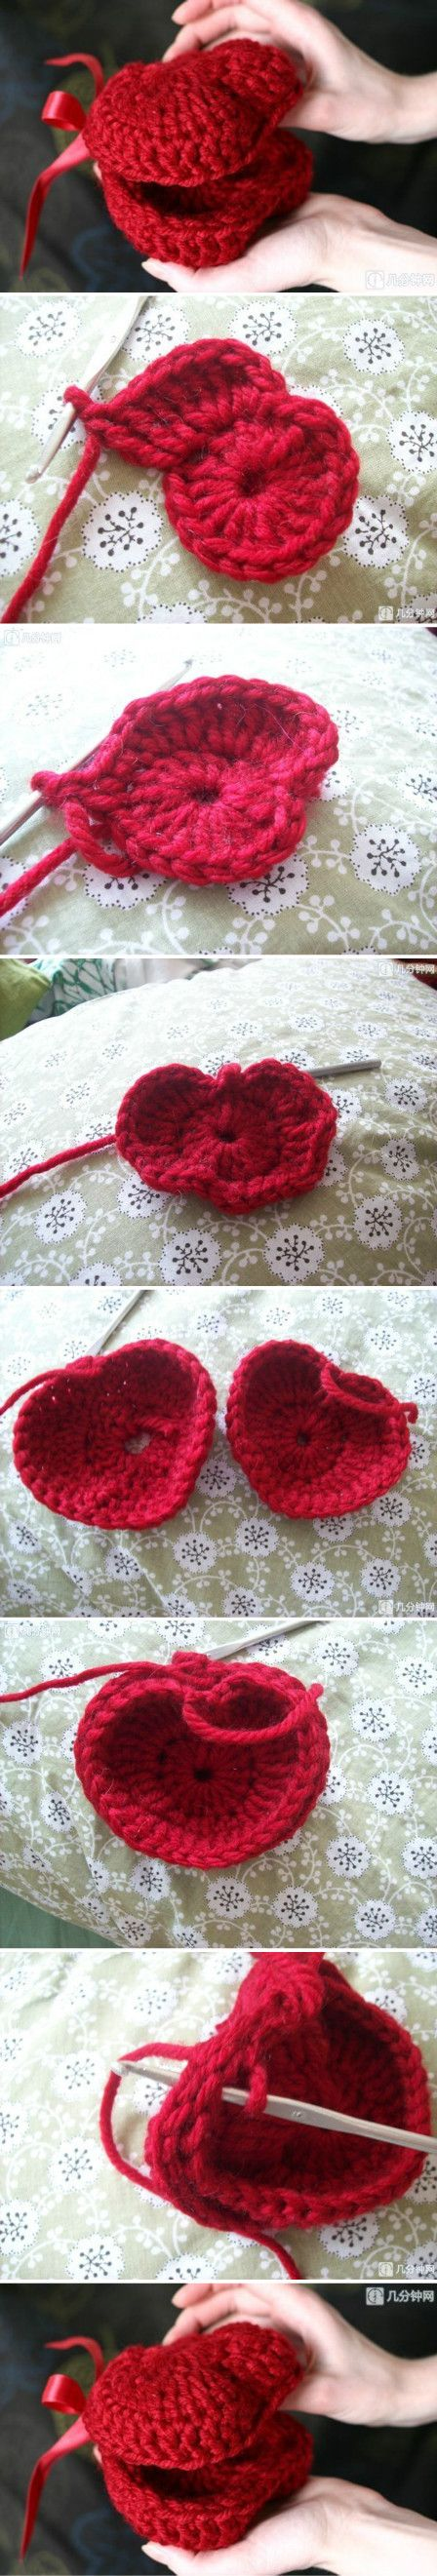 ♥ⓛⓞⓥⓔ♥ Heart Box.. #love #crochet #hearts and #valentines.. 的照片 - 微相册